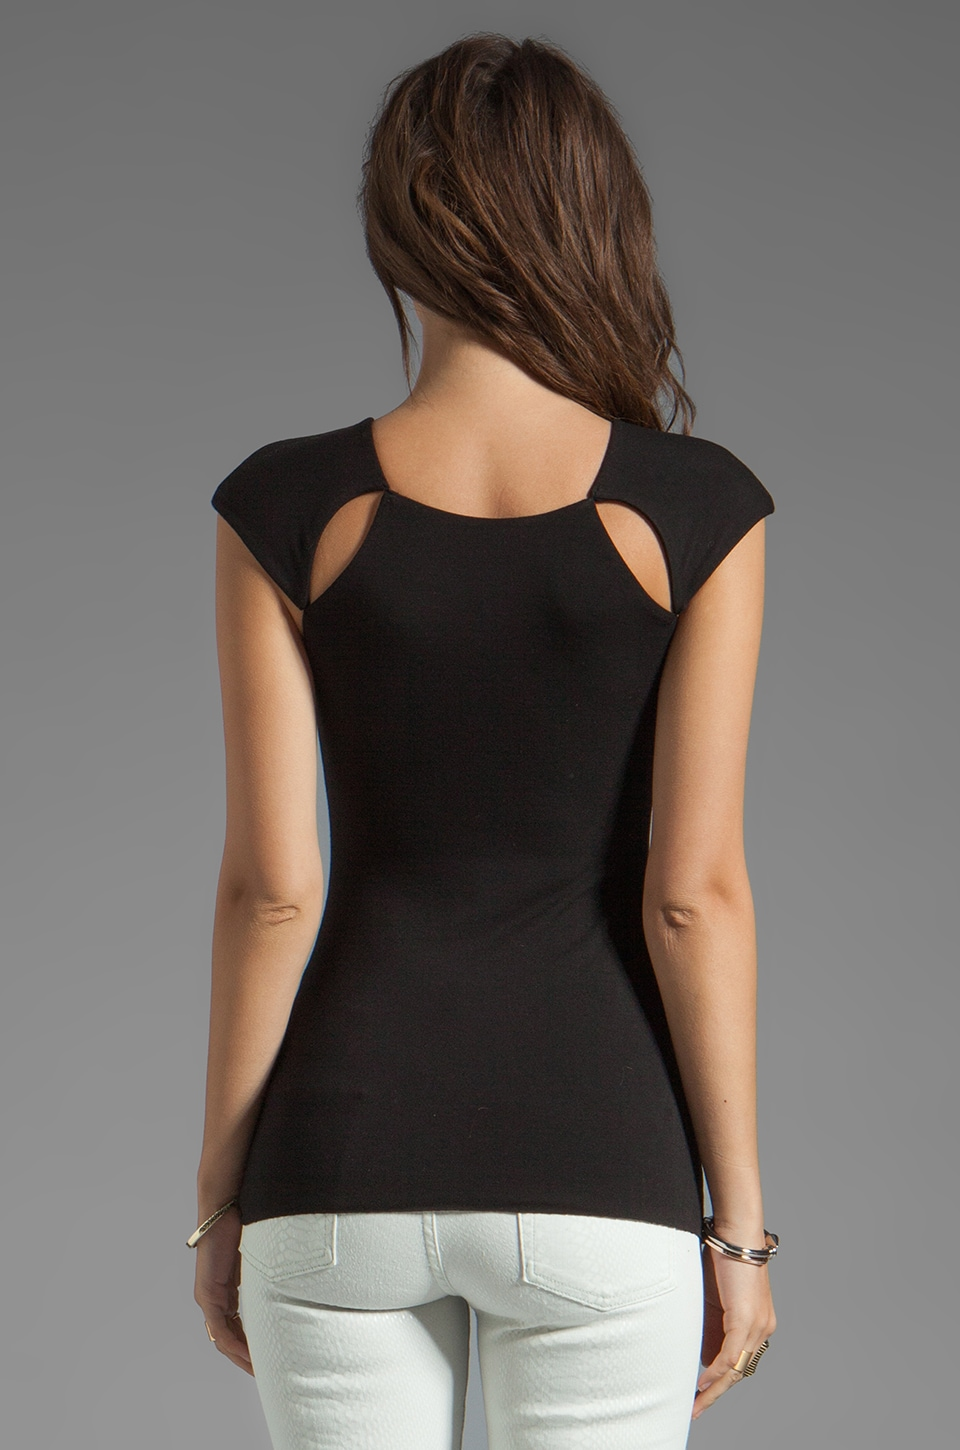 Bailey 44 Pit Stop Top in Black